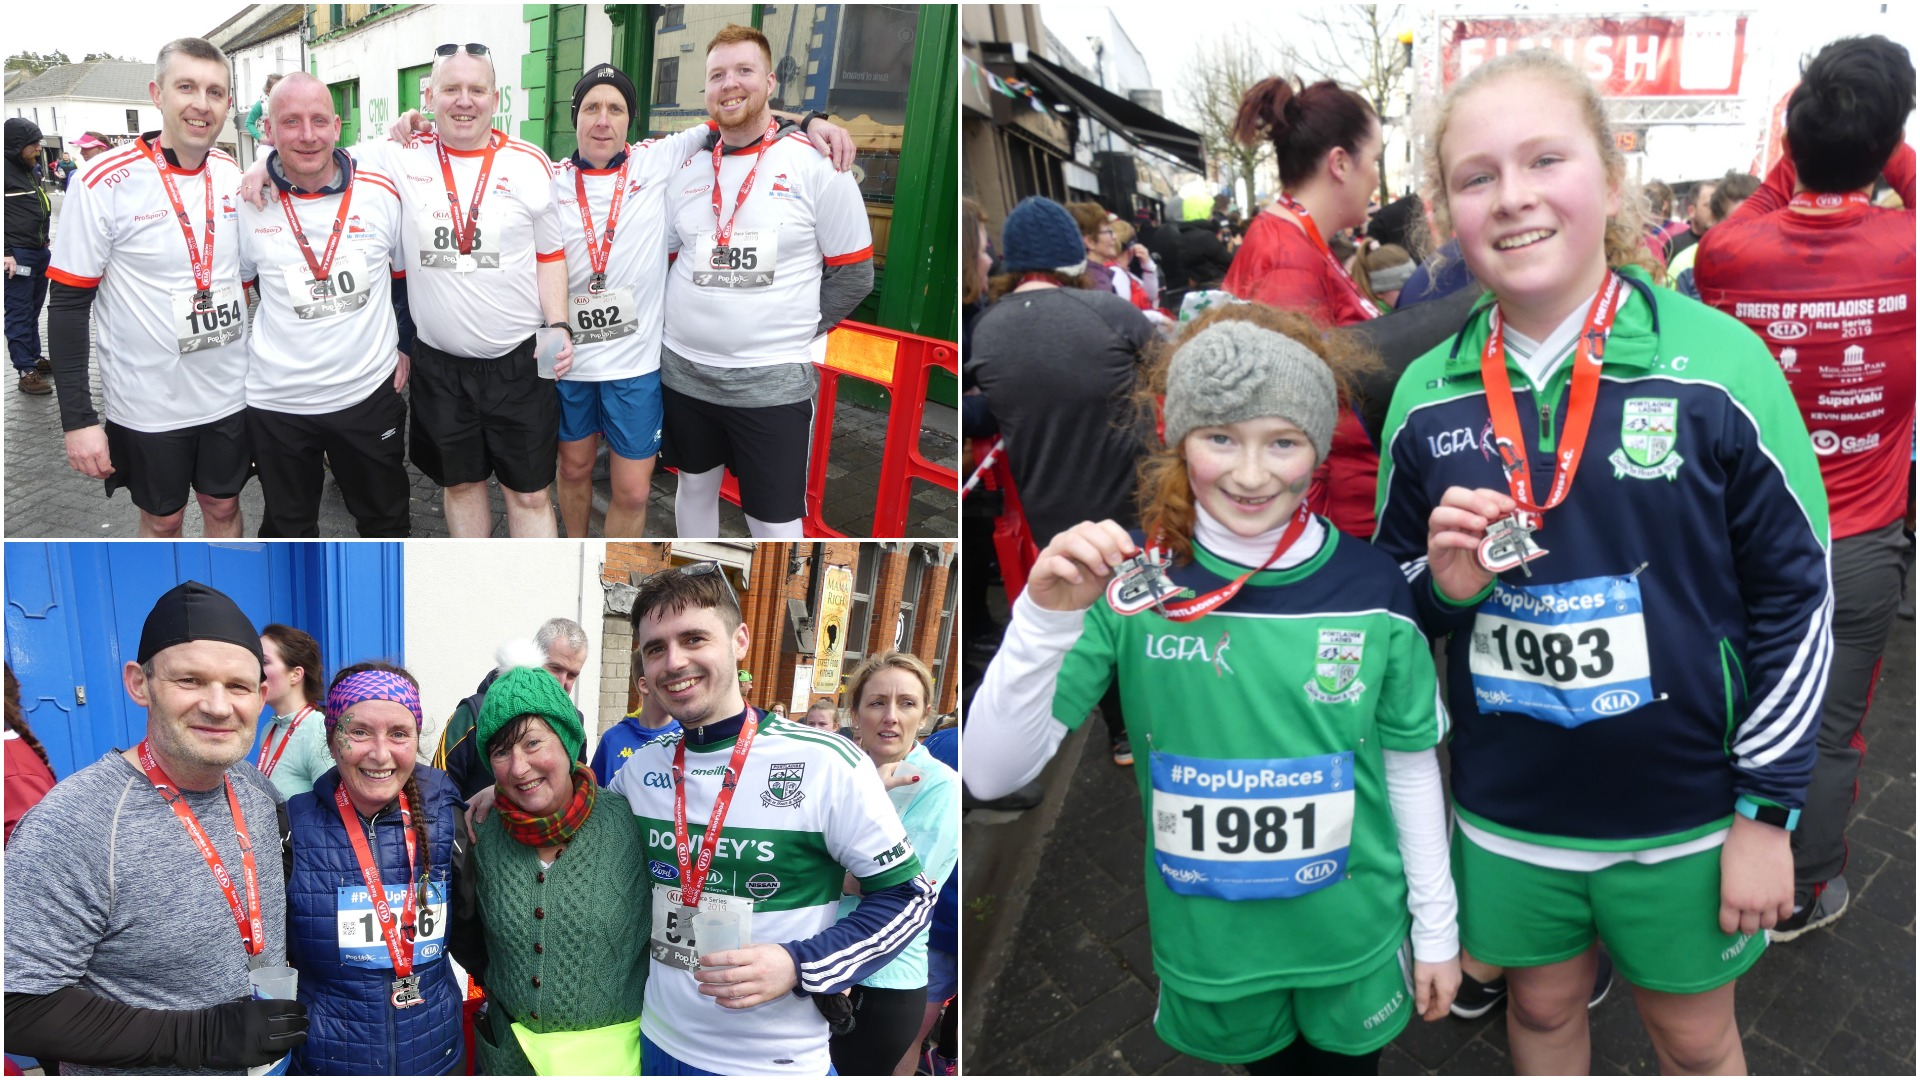 0132cf9f8 On a windy St Patrick's day in Portlaoise, a record entry of almost 1,000  runners took to the Streets of Portlaoise for the first round of the 2019  Kia Race ...